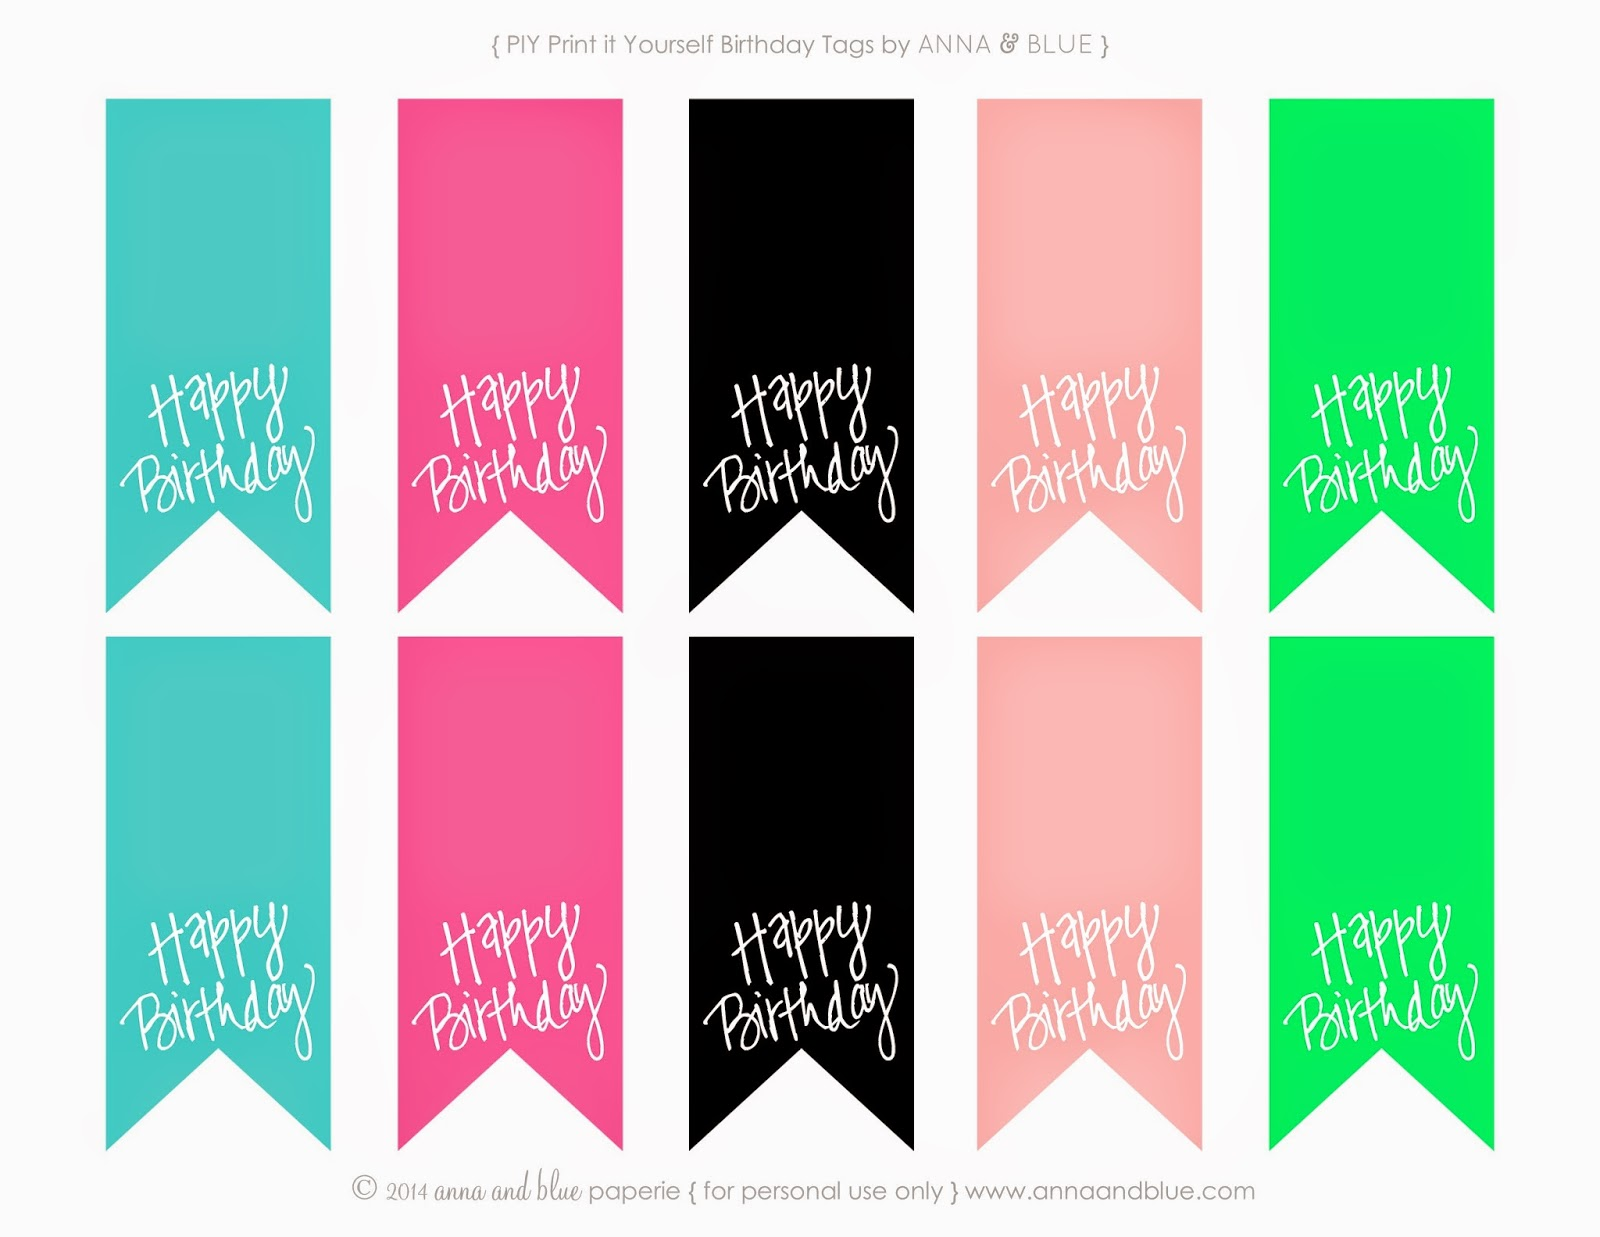 Revered image with free printable birthday tag